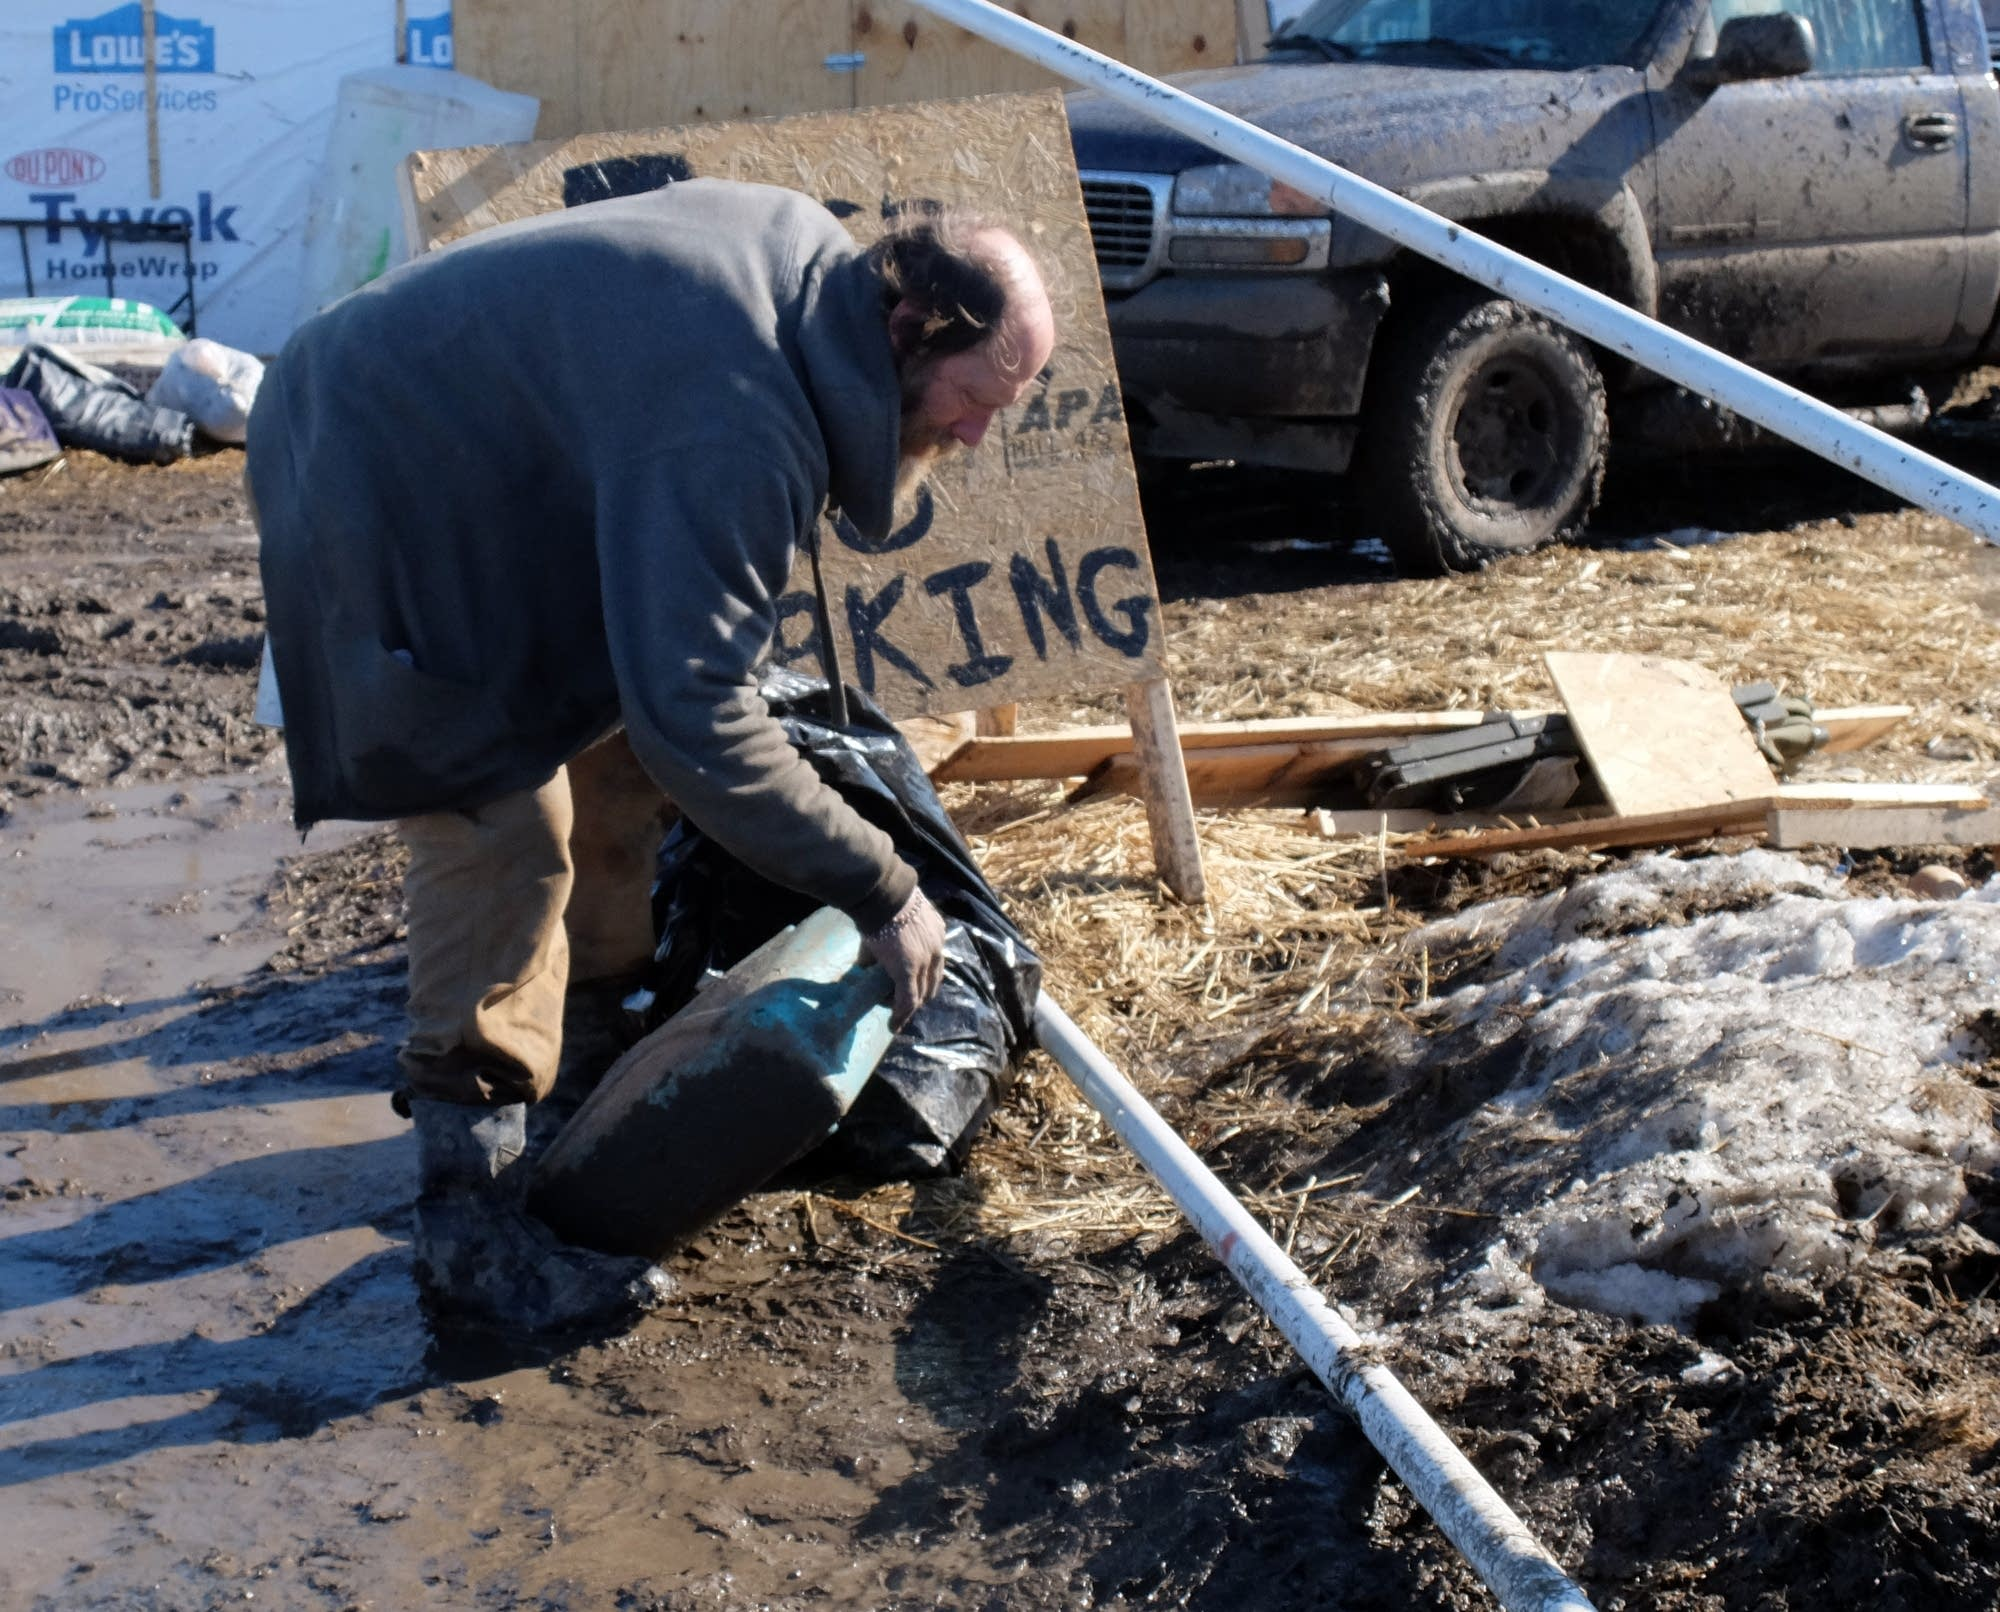 Eric Wallace-Senft picks up debris at Oceti Sakowin camp.